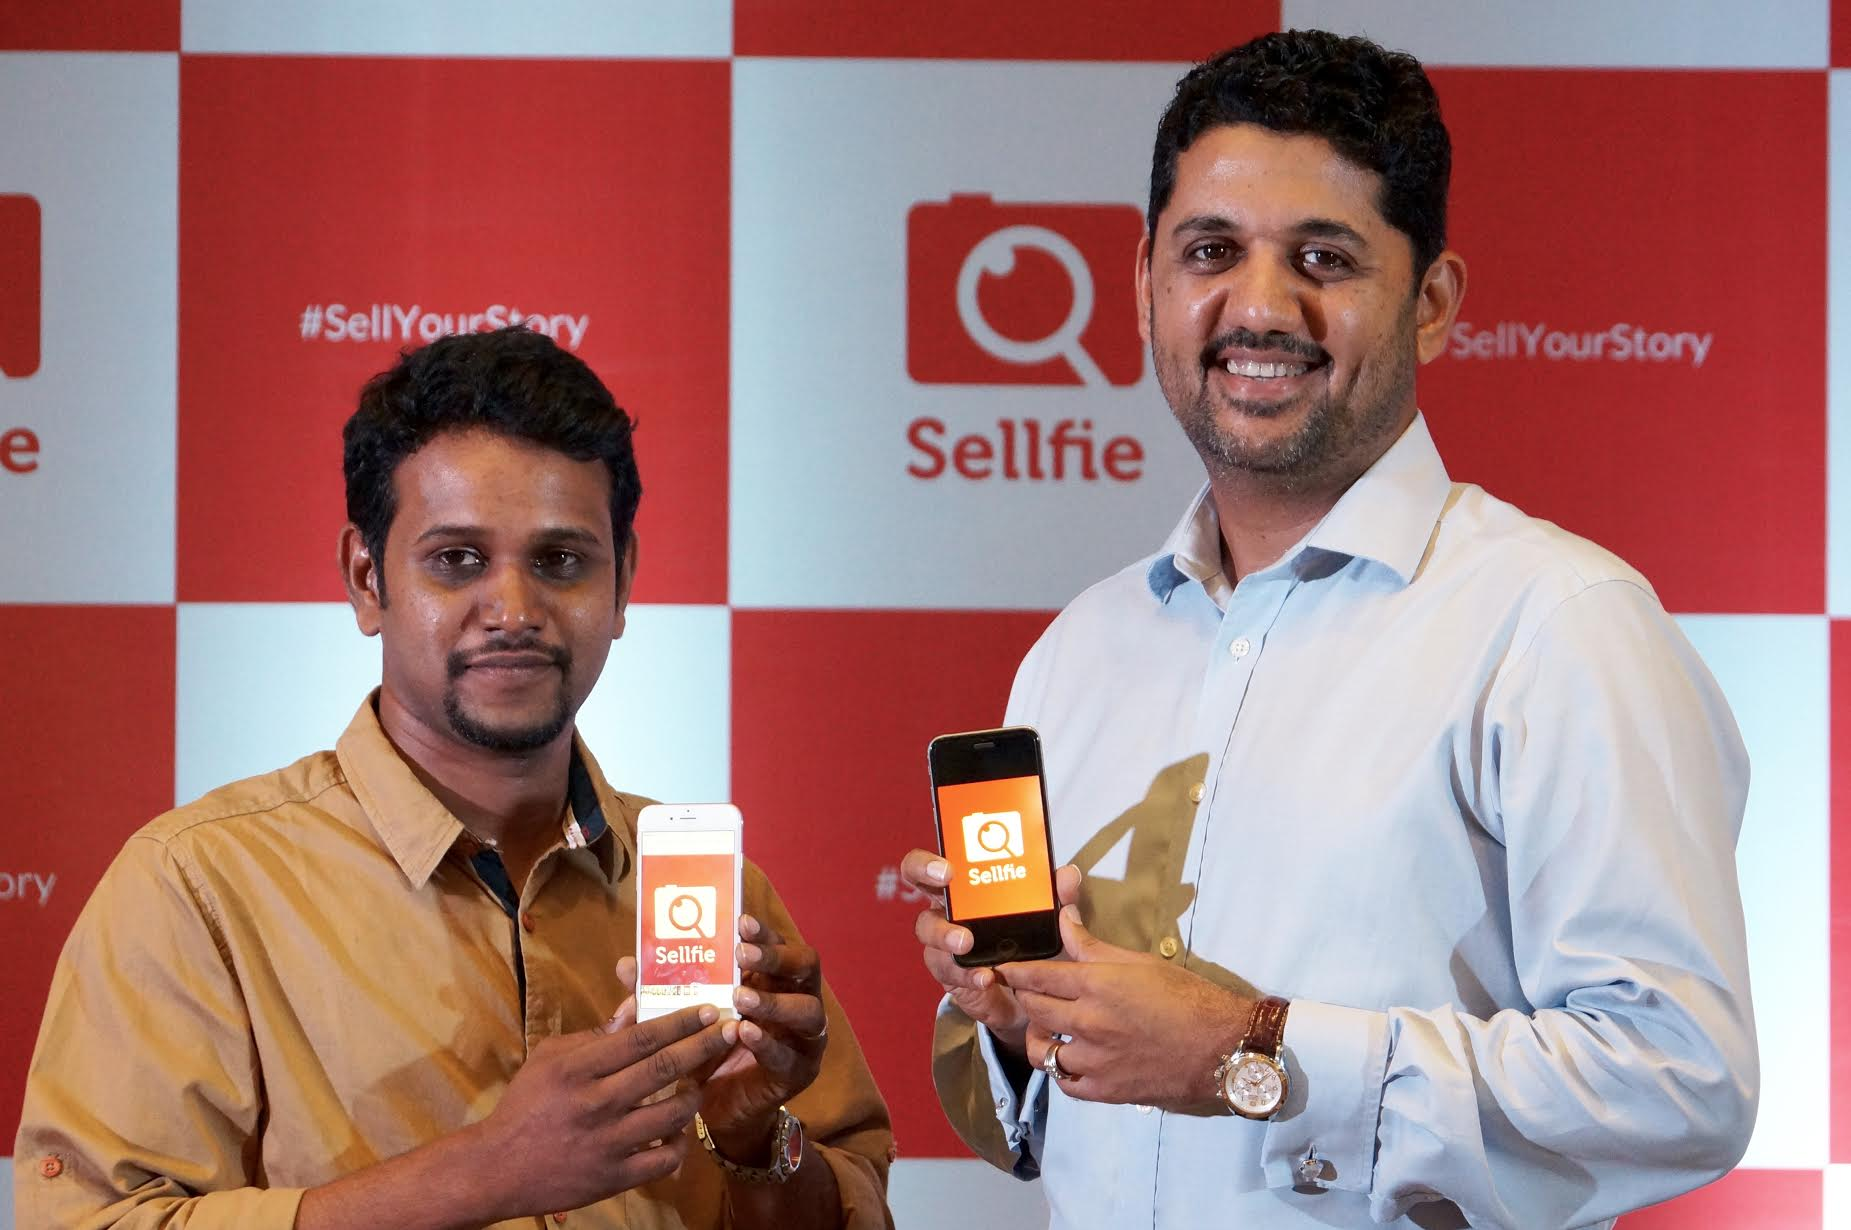 Indian FinTech Company Citrus Launches Sellfie, the World's First Integrated Contextual Commerce Platform